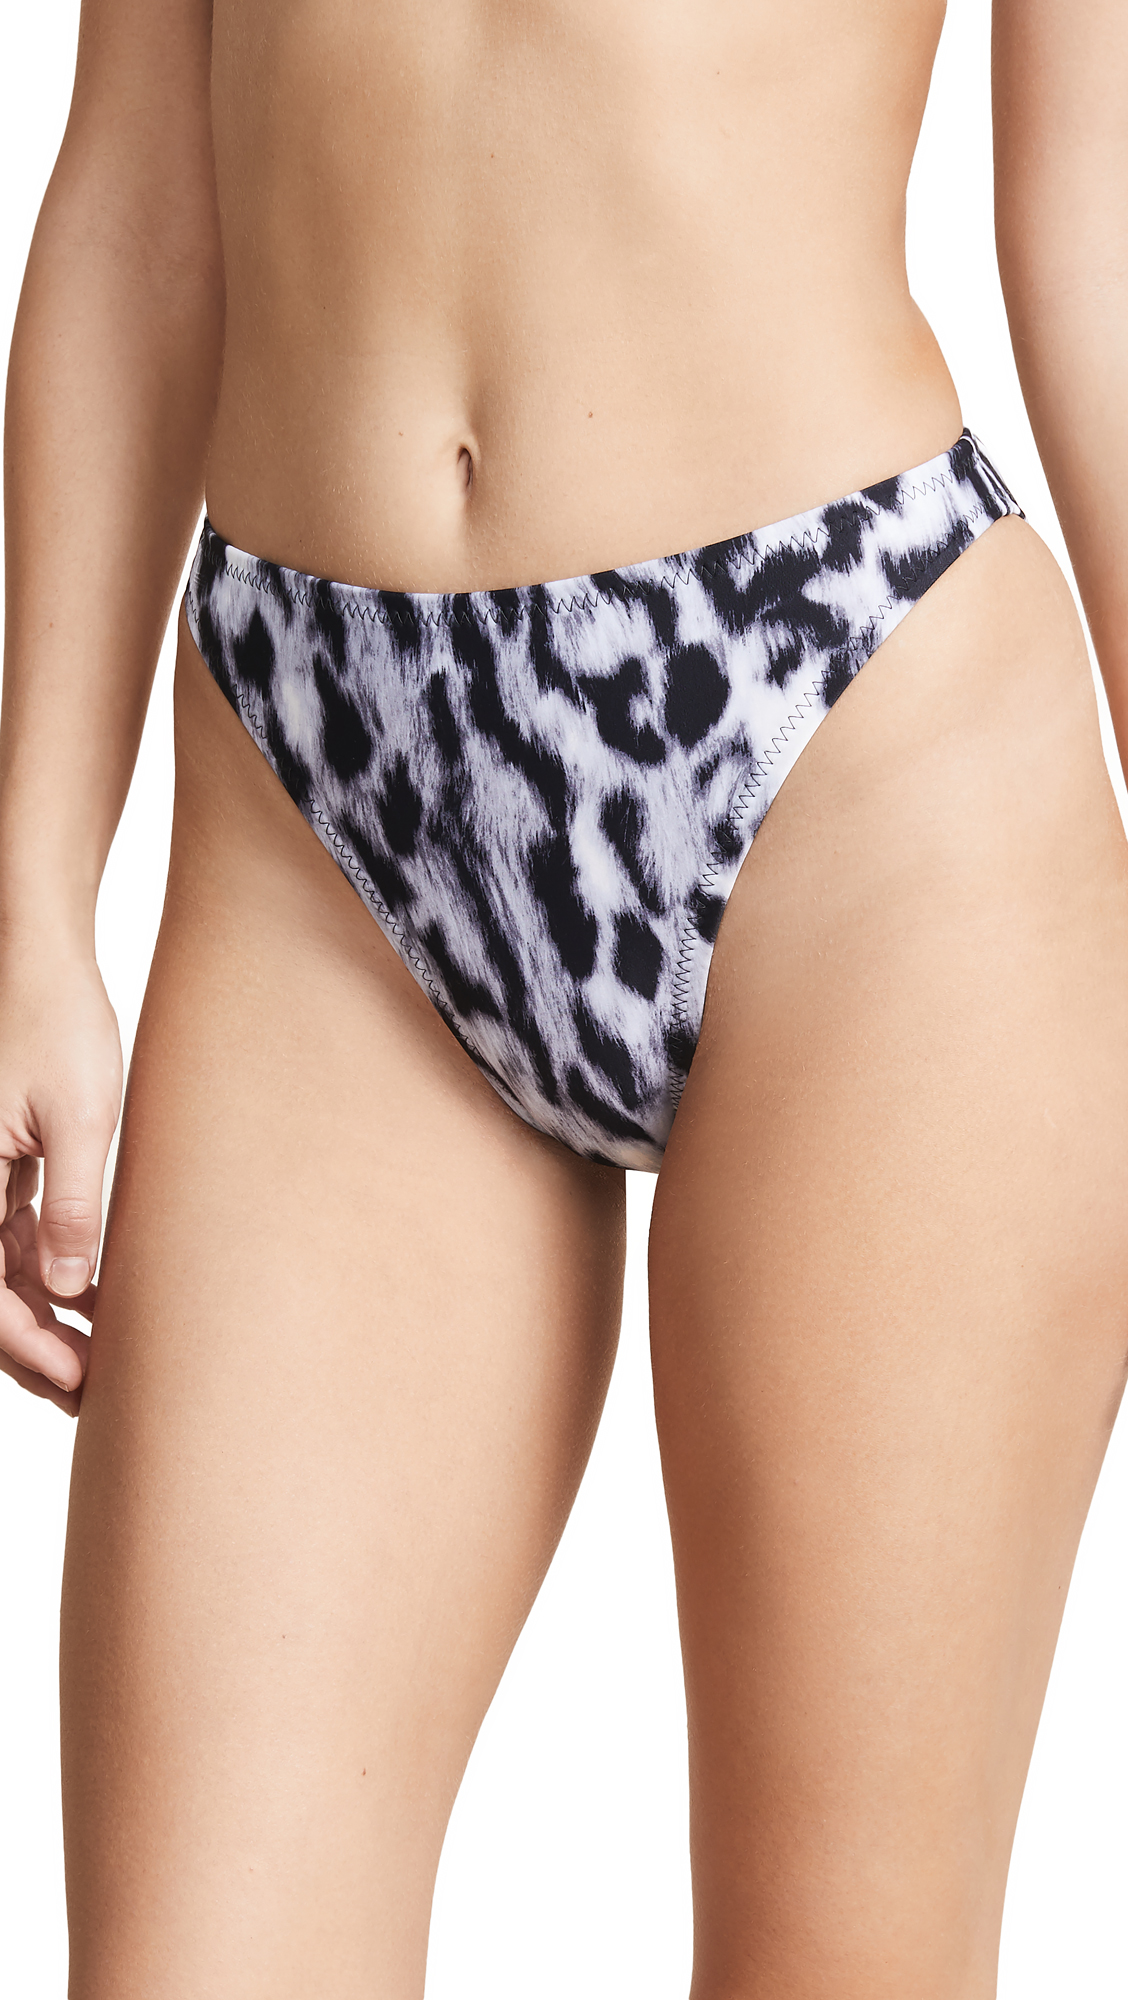 Norma Kamali Luca Bikini Bottoms - Abstract Leopard